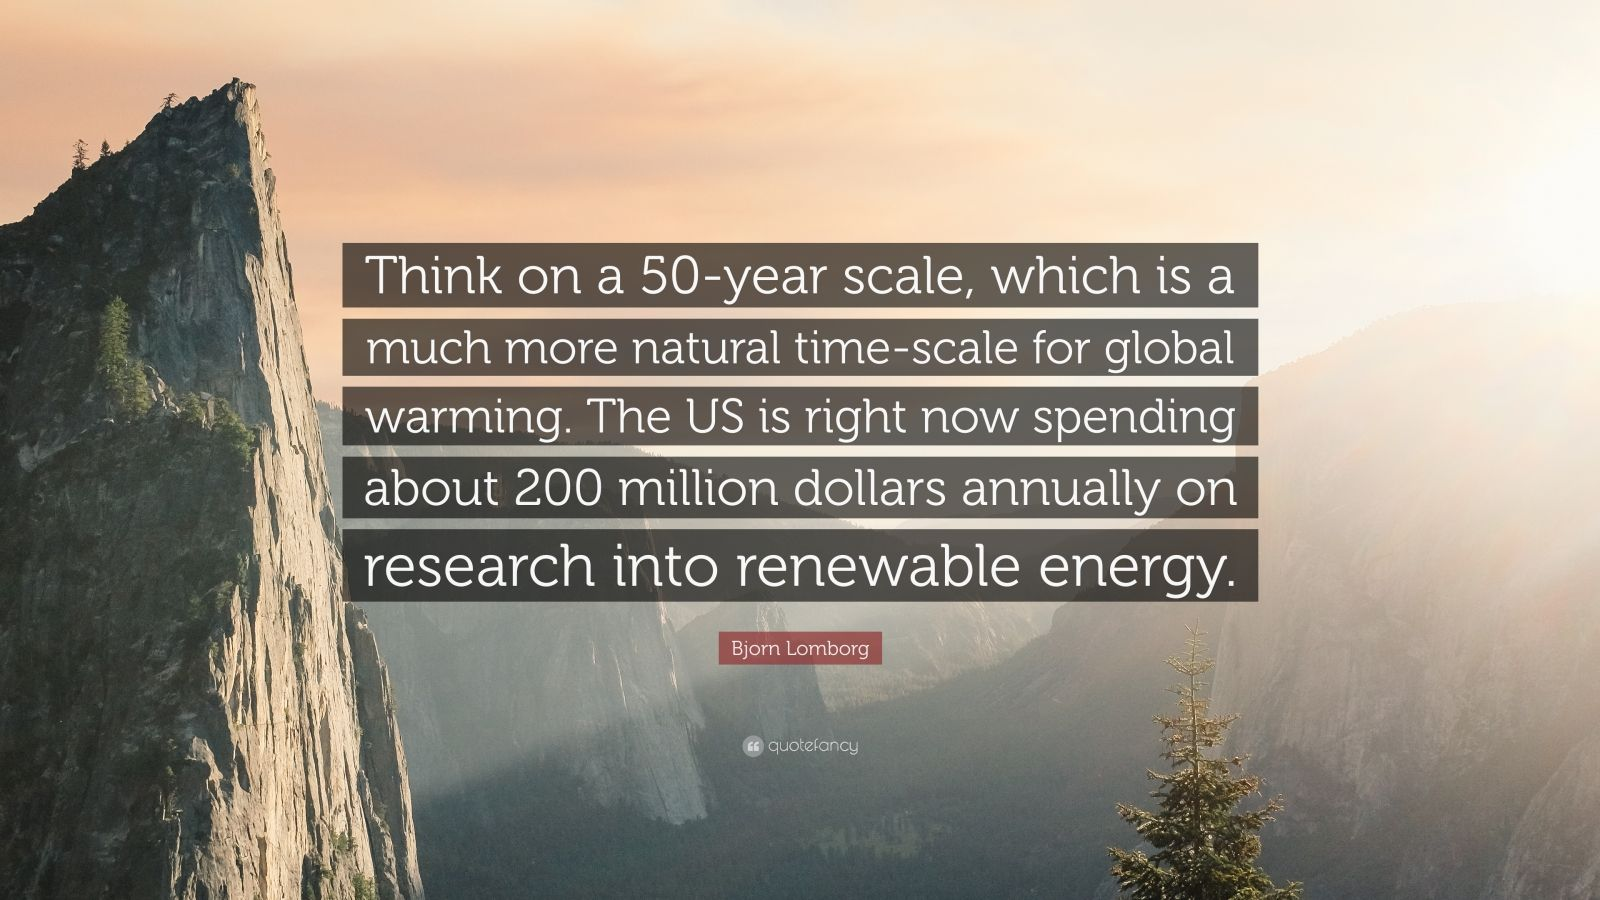 """Bjorn Lomborg Quote: """"Think on a 50-year scale, which is a much more natural time-scale for global warming. The US is right now spending about 200 million dollars annually on research into renewable energy."""""""